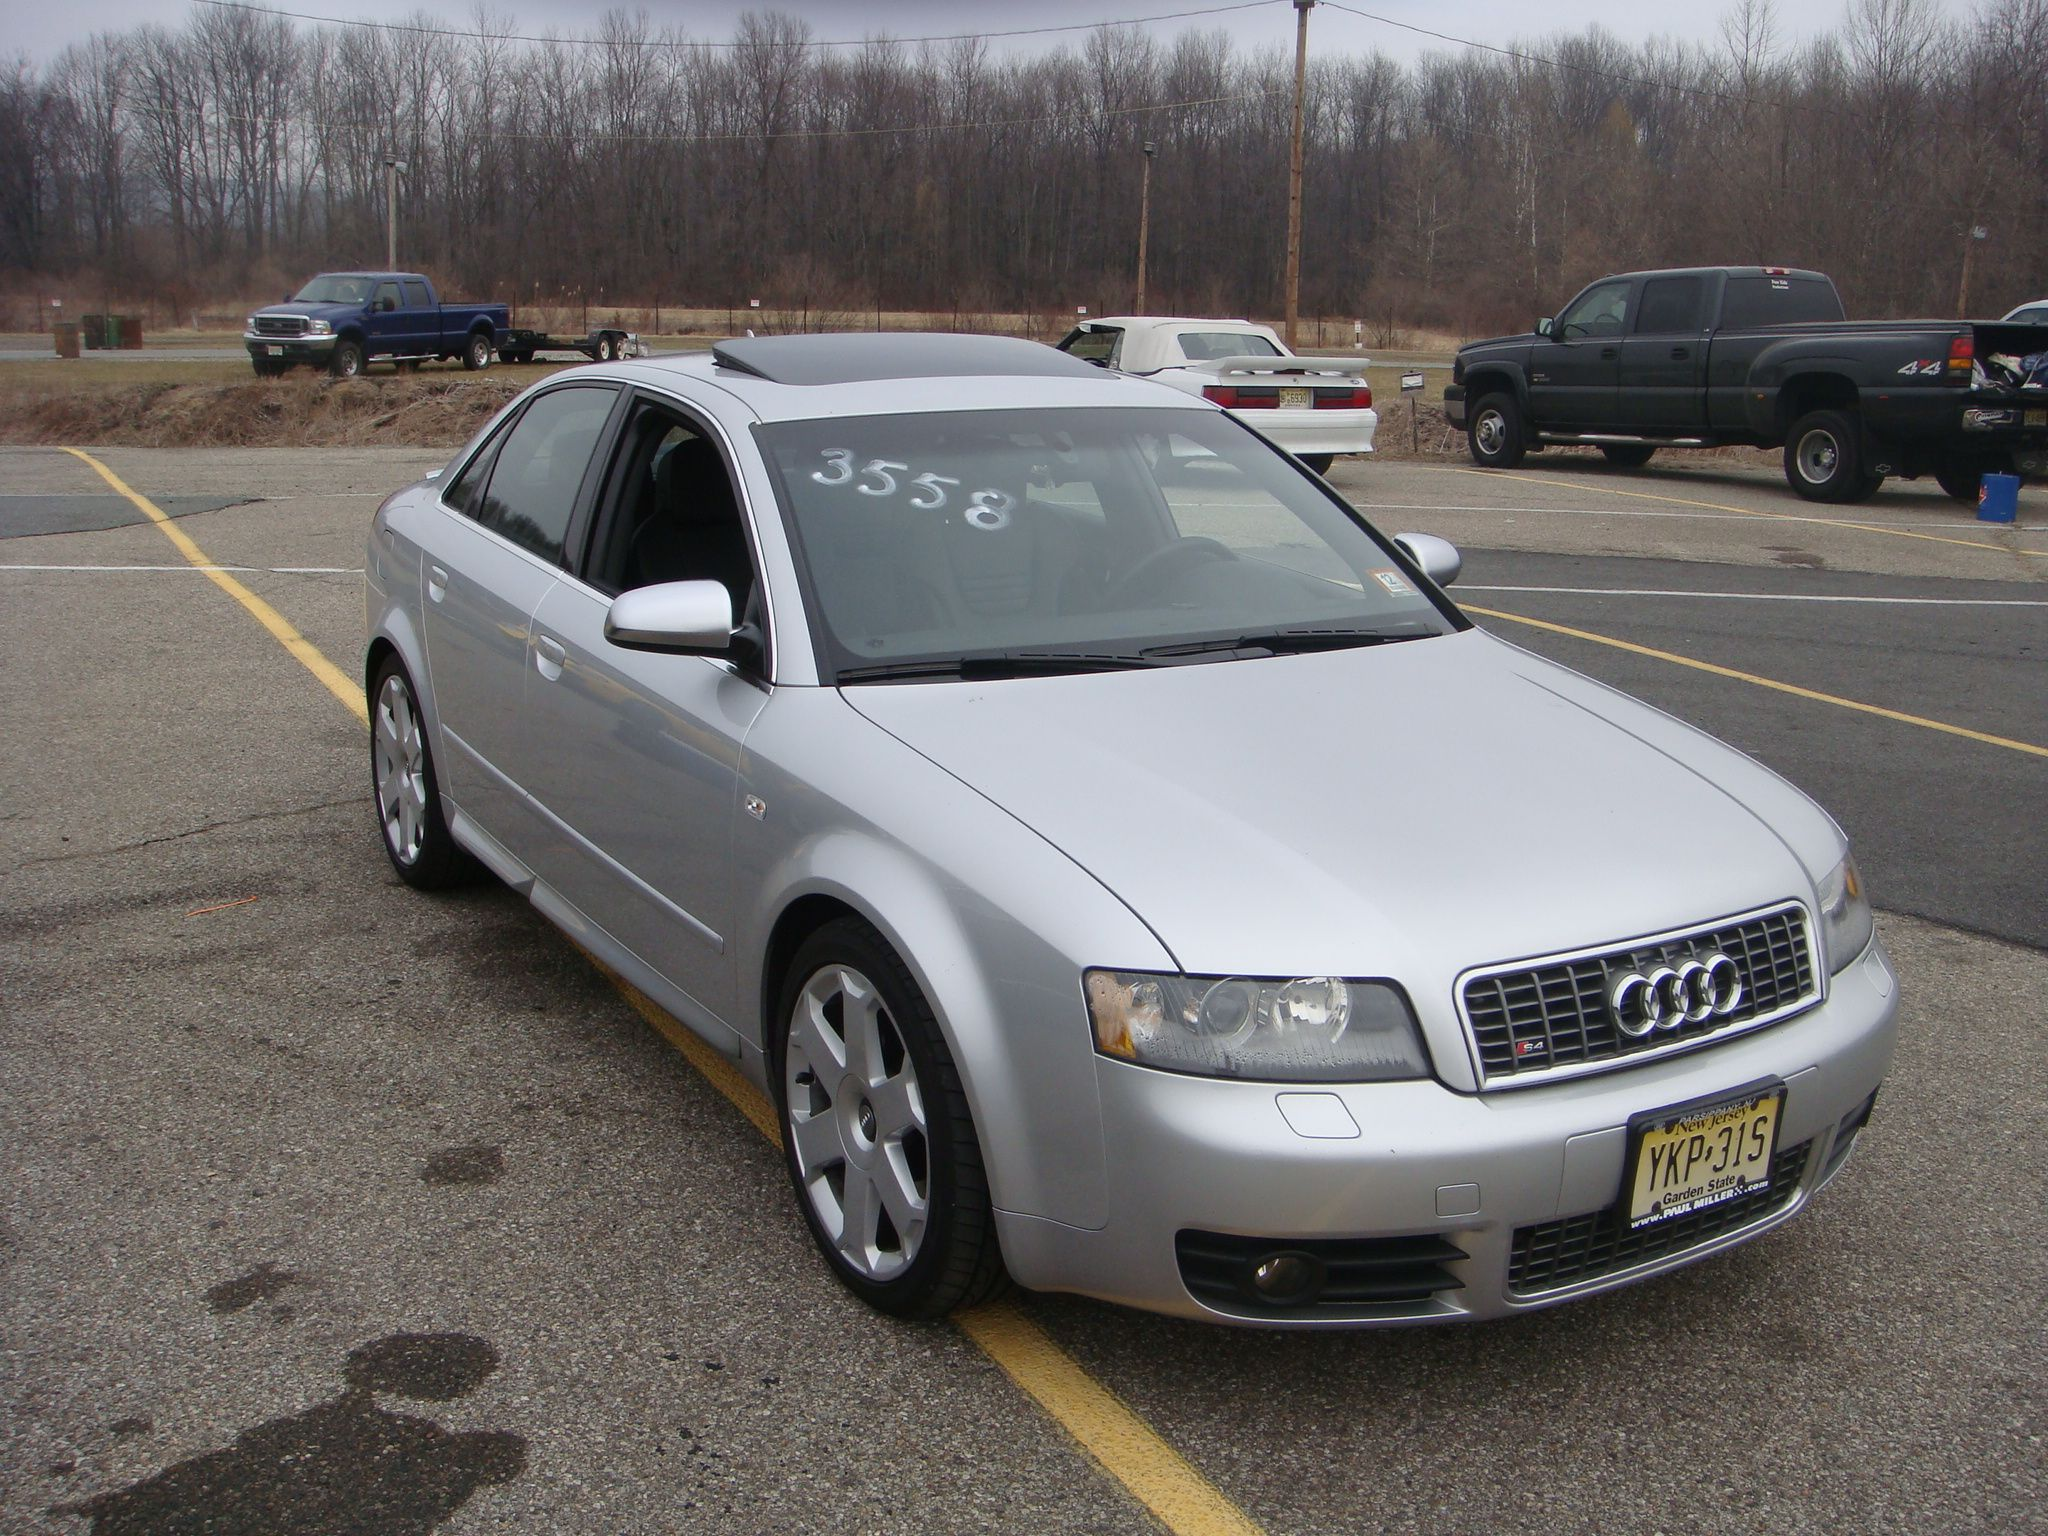 2005 Audi Rs4 Audiworld Audi News And Discussion Audi Rs4 B7